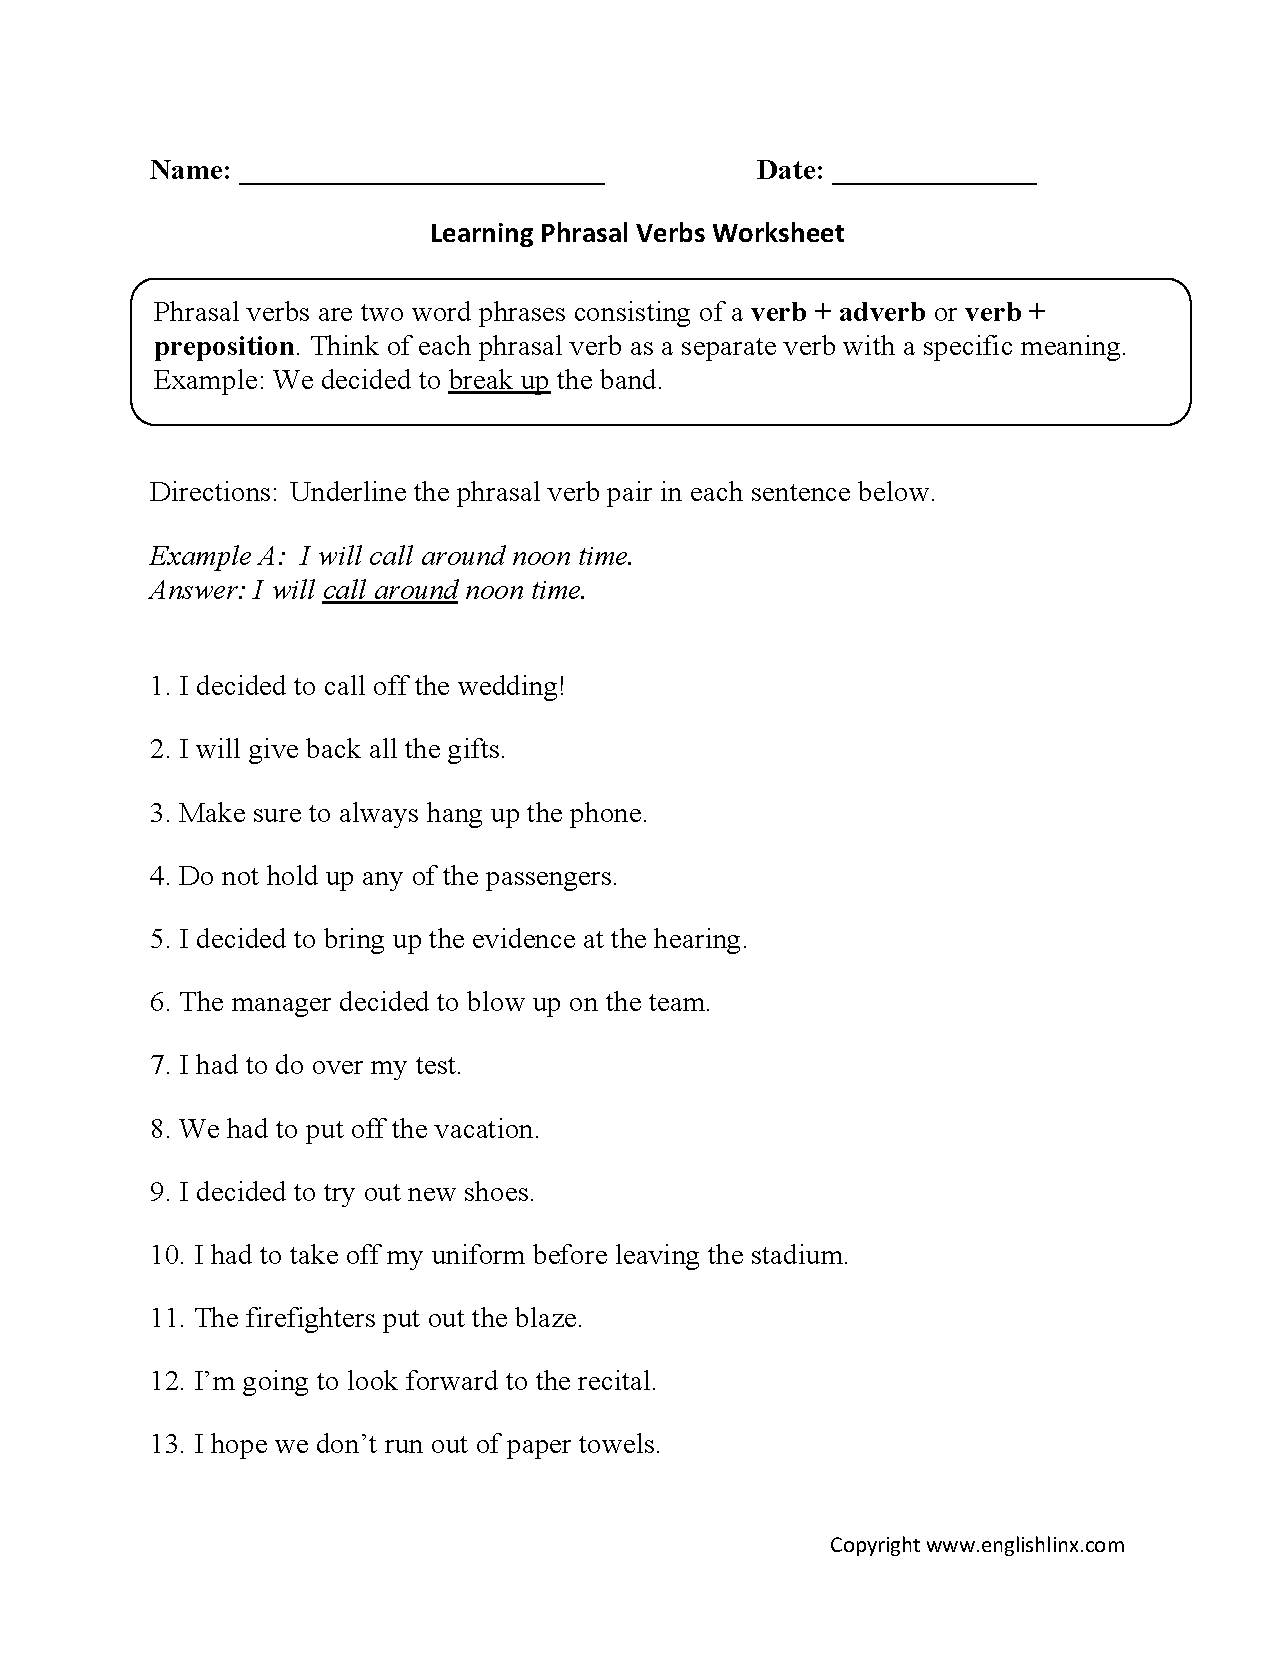 worksheet Free Verb Worksheets englishlinx com verbs worksheets phrasal worksheets